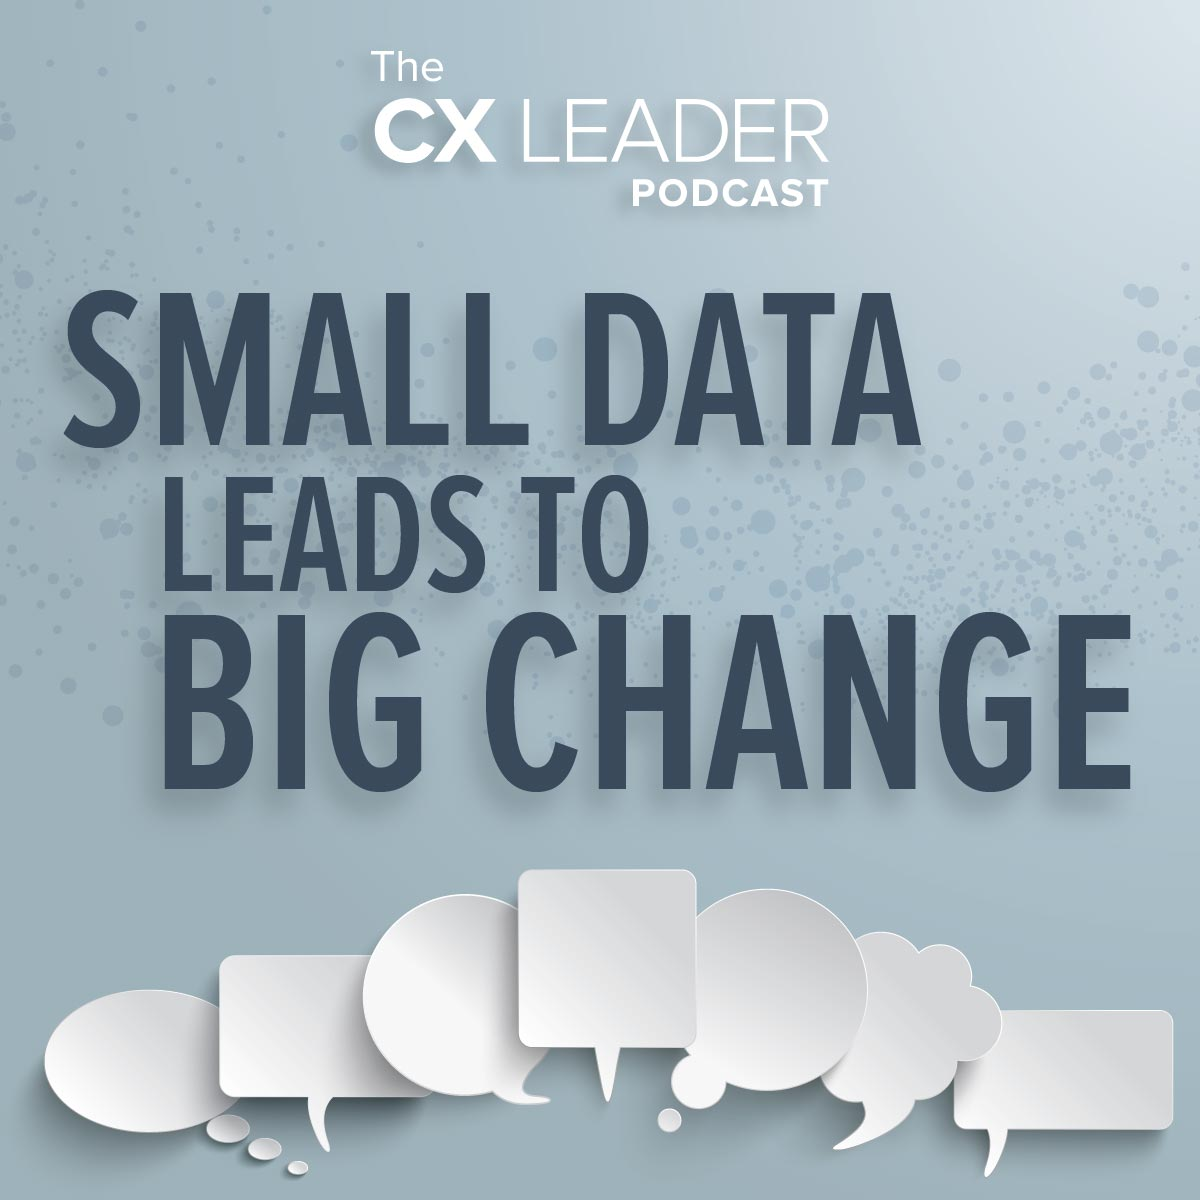 Small Data Leads to Big Change